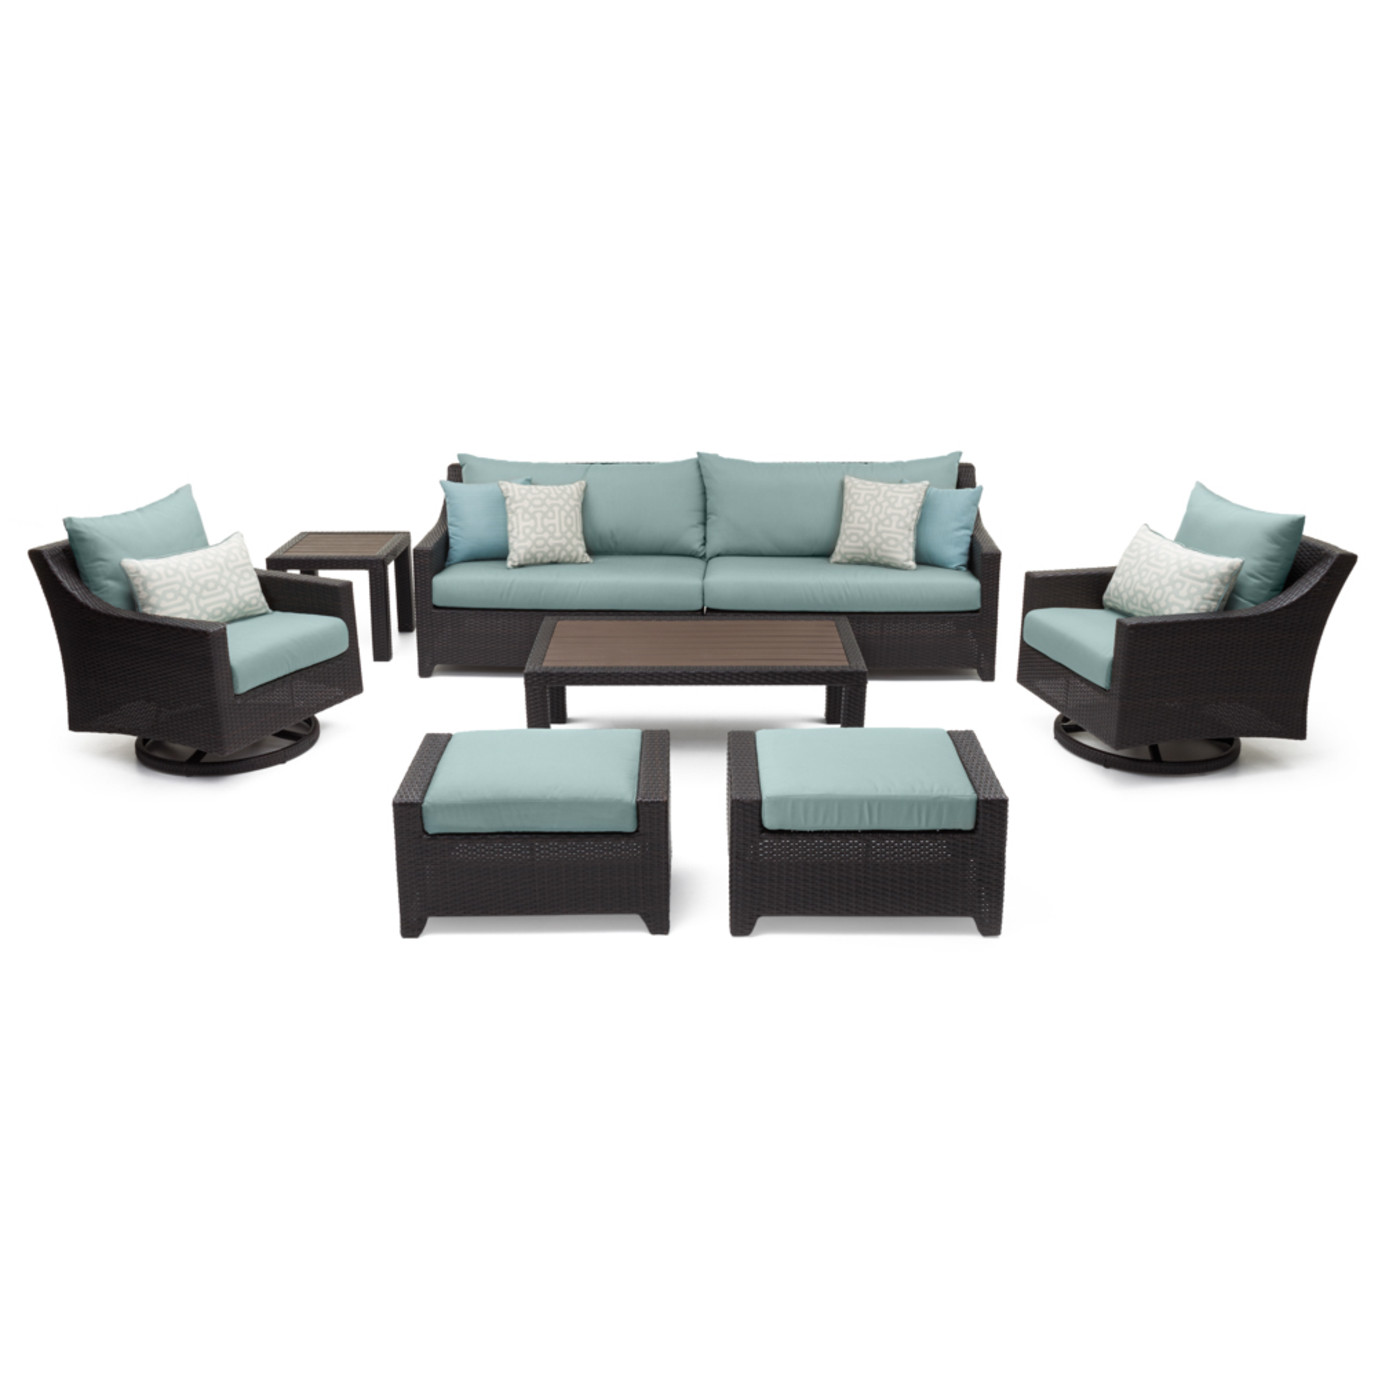 Deco™ Deluxe 8pc Sofa & Club Chair Set - Spa Blue